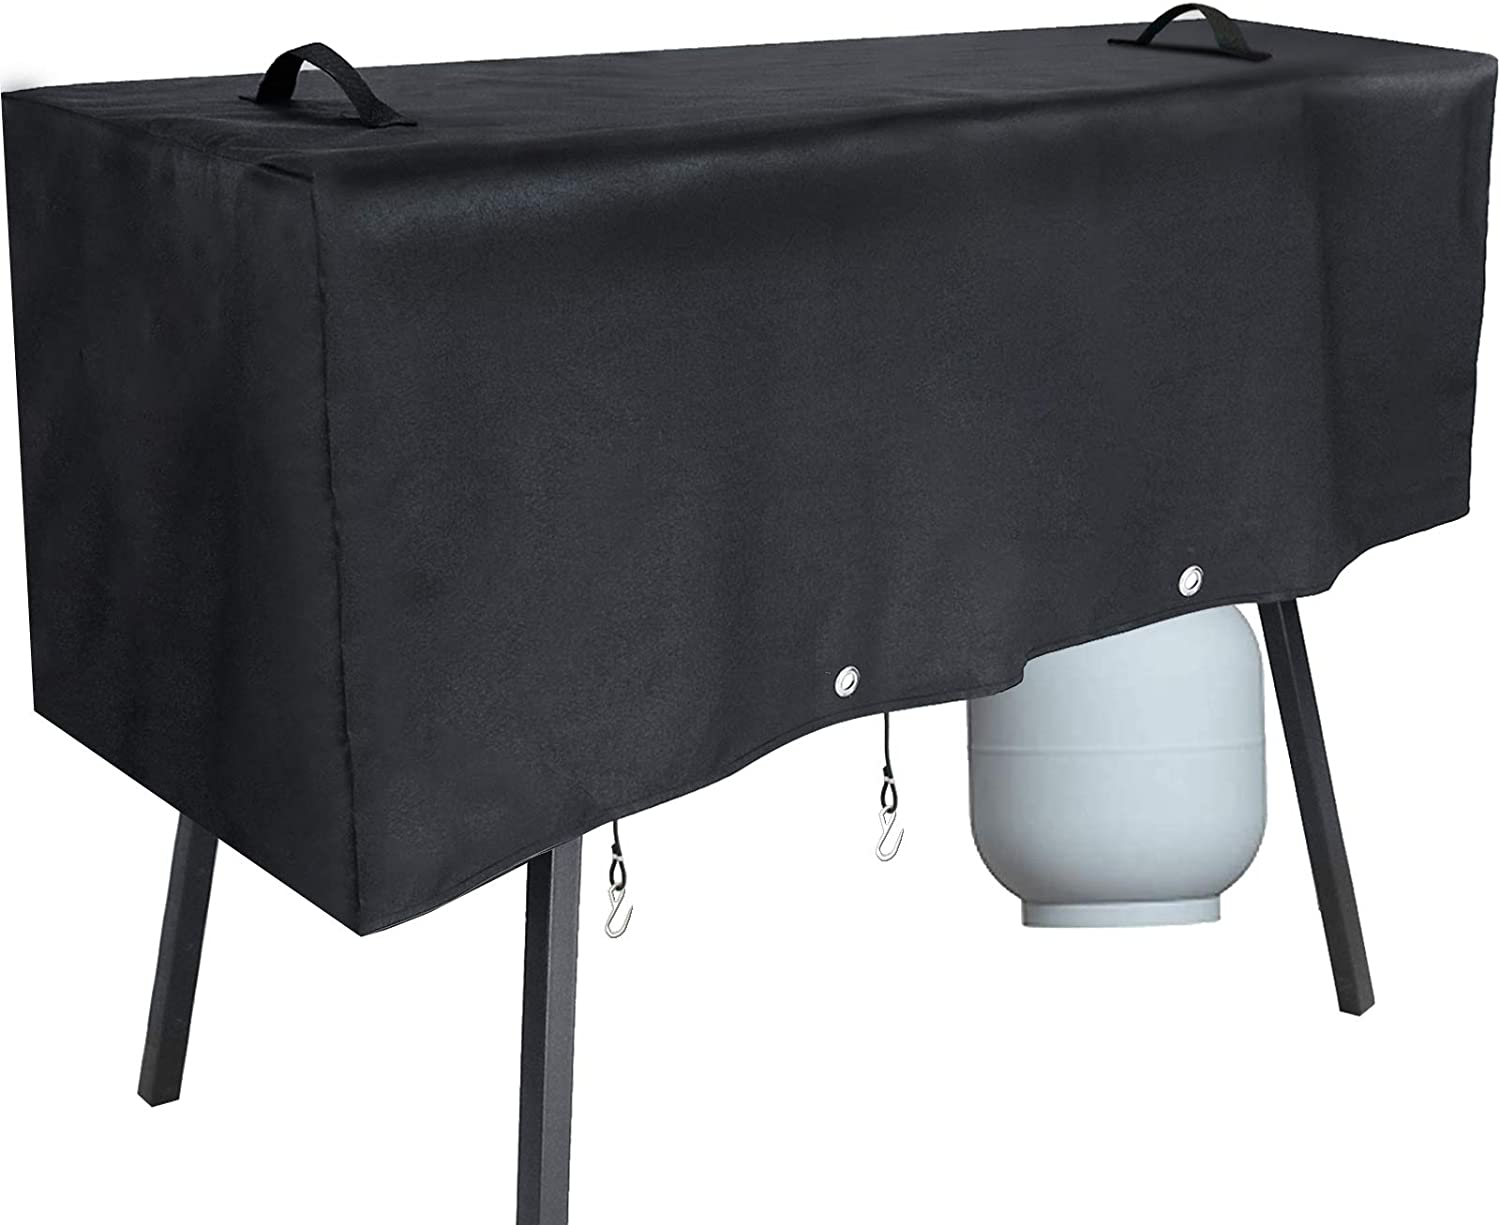 Hisencn Patio Cover Fits Camp Chef 3 Propane Burner Stove, Heavy-Duty Water Proof Grill Cover Fits Models of PRO90 TB90LW TB90LWG TB90LWG15 DB90D SPG90B, Black